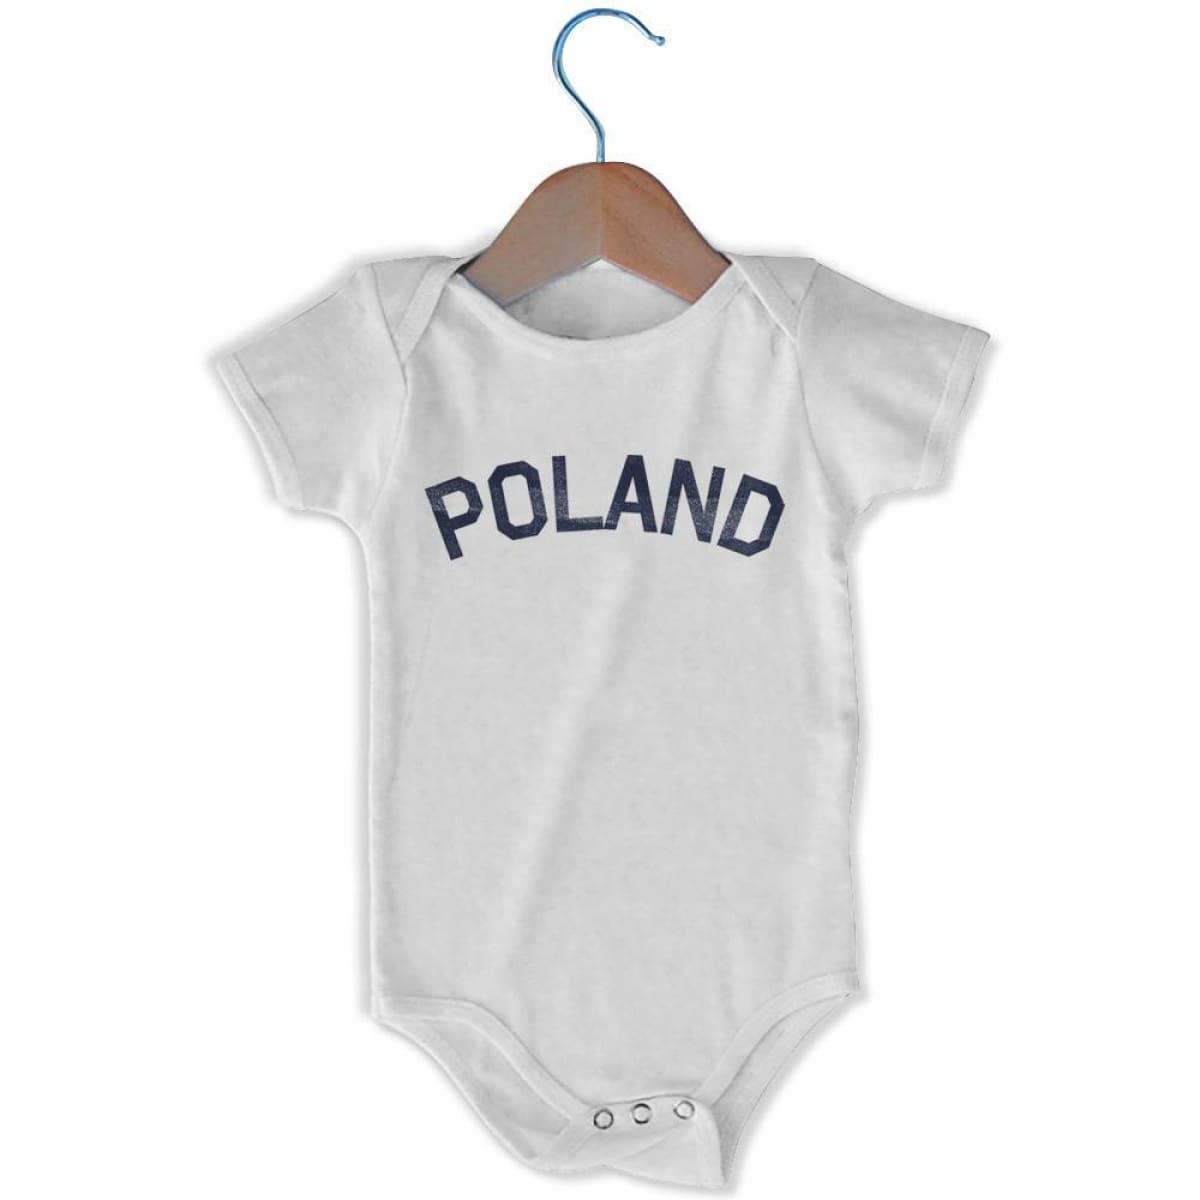 Poland City Infant Onesie - White / 6 - 9 Months - Mile End City